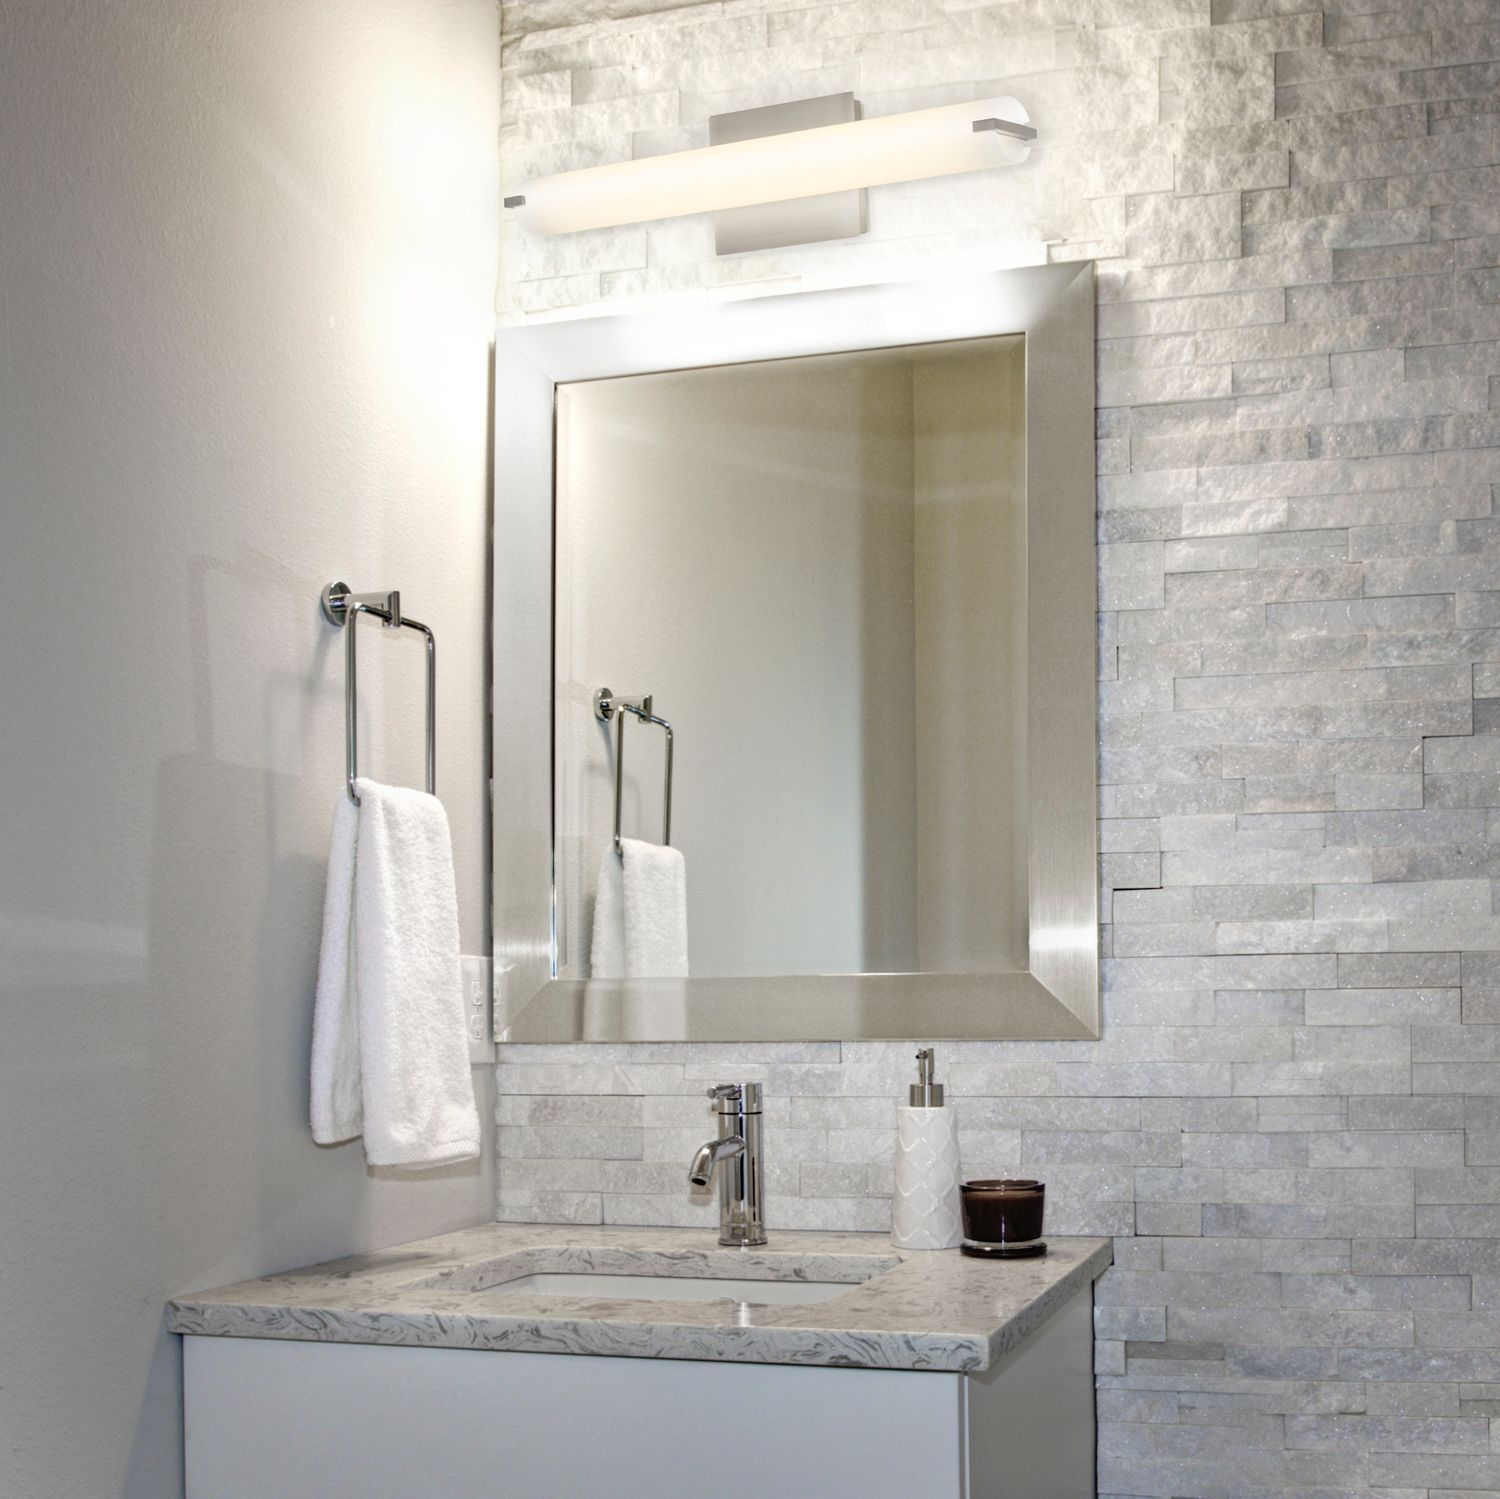 How To Contemporary Bathroom Update Is It Time For The Bathroom Make Over You Ve Been Dreaming Modern Bathroom Lighting Vanity Lighting Decor Interior Design